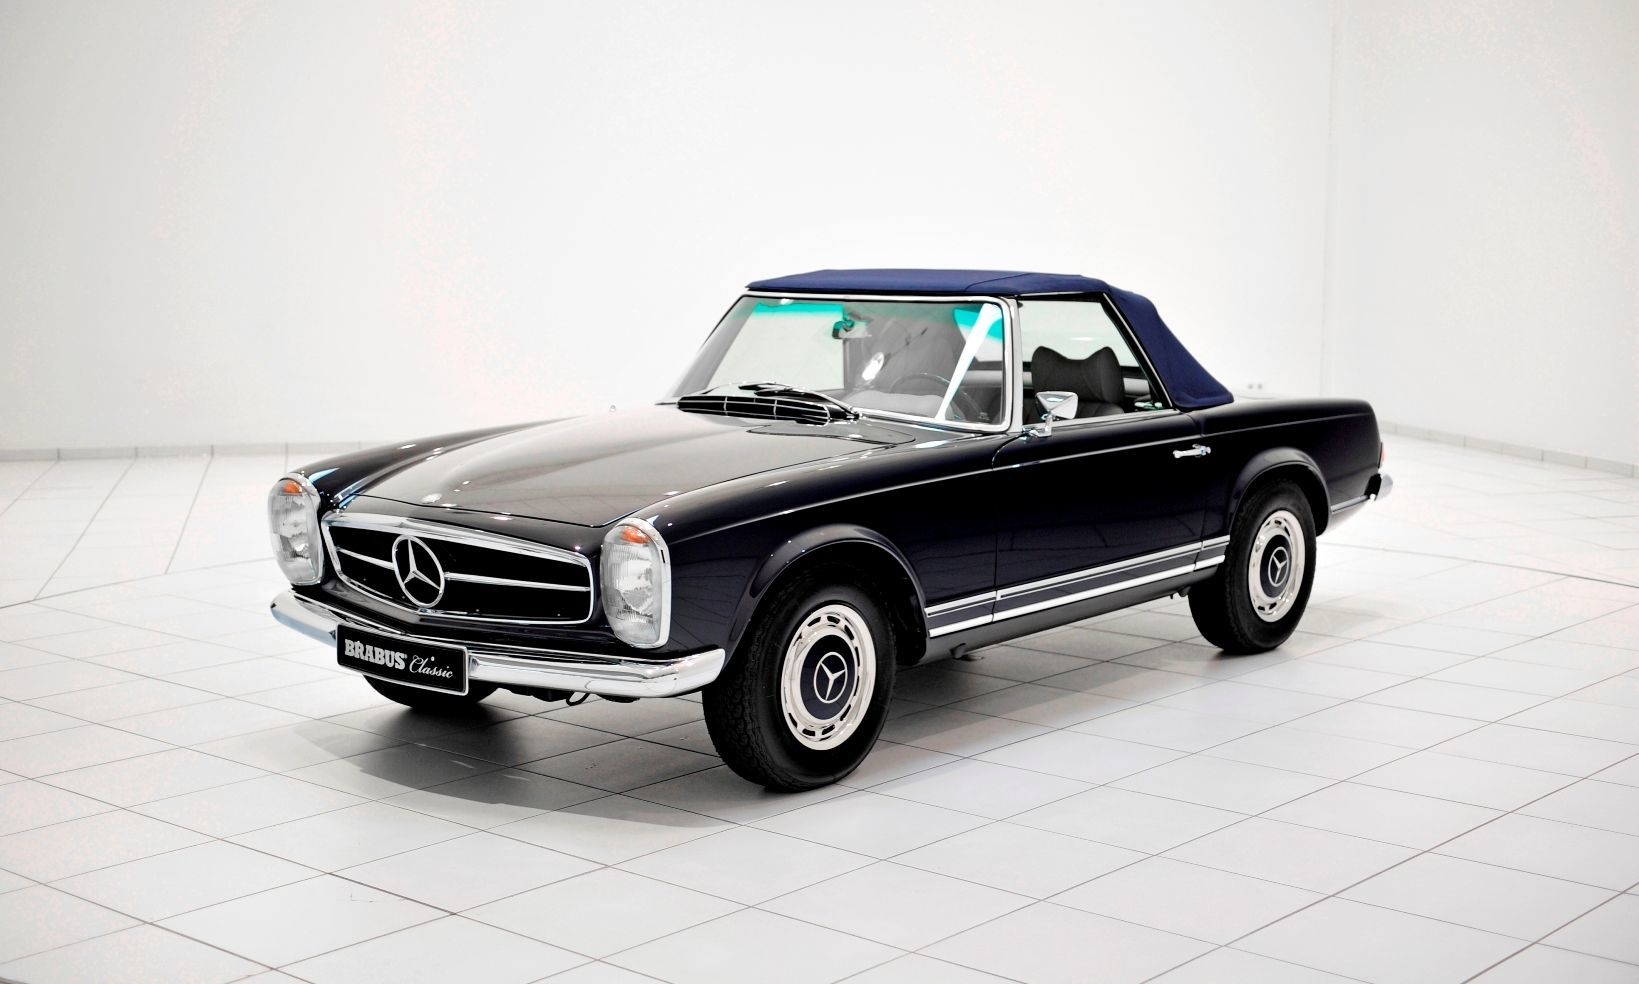 Brabus classic mercedes benz restoration examples for Vintage mercedes benz